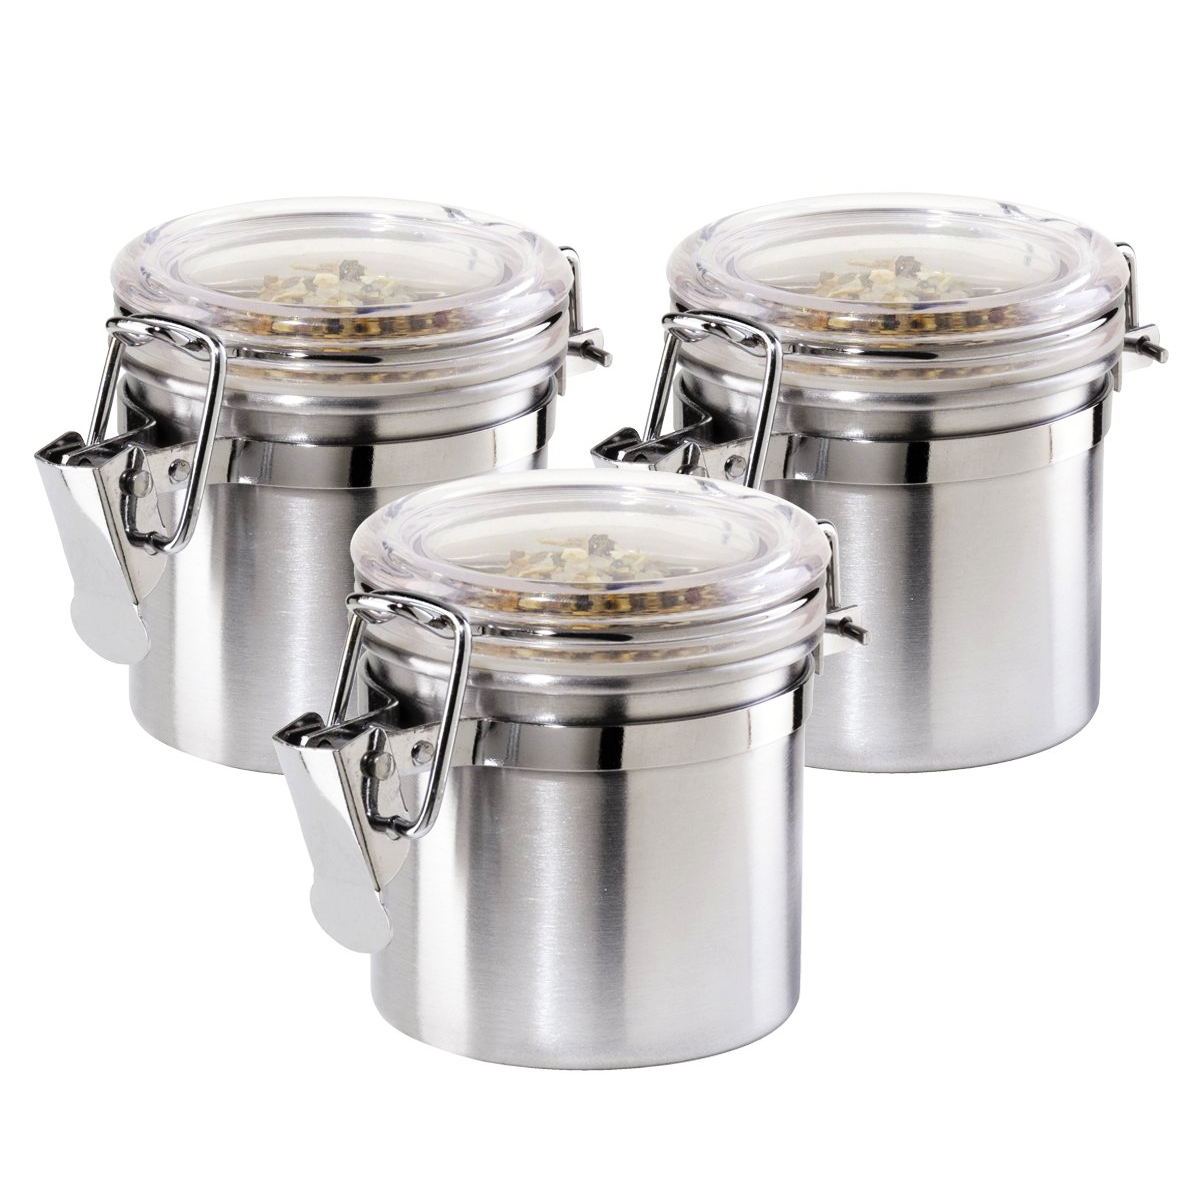 OGGI Satin Finish Stainless Steel 3 Ounce Mini Canister with Airtight Clamp Lid, Set of 3